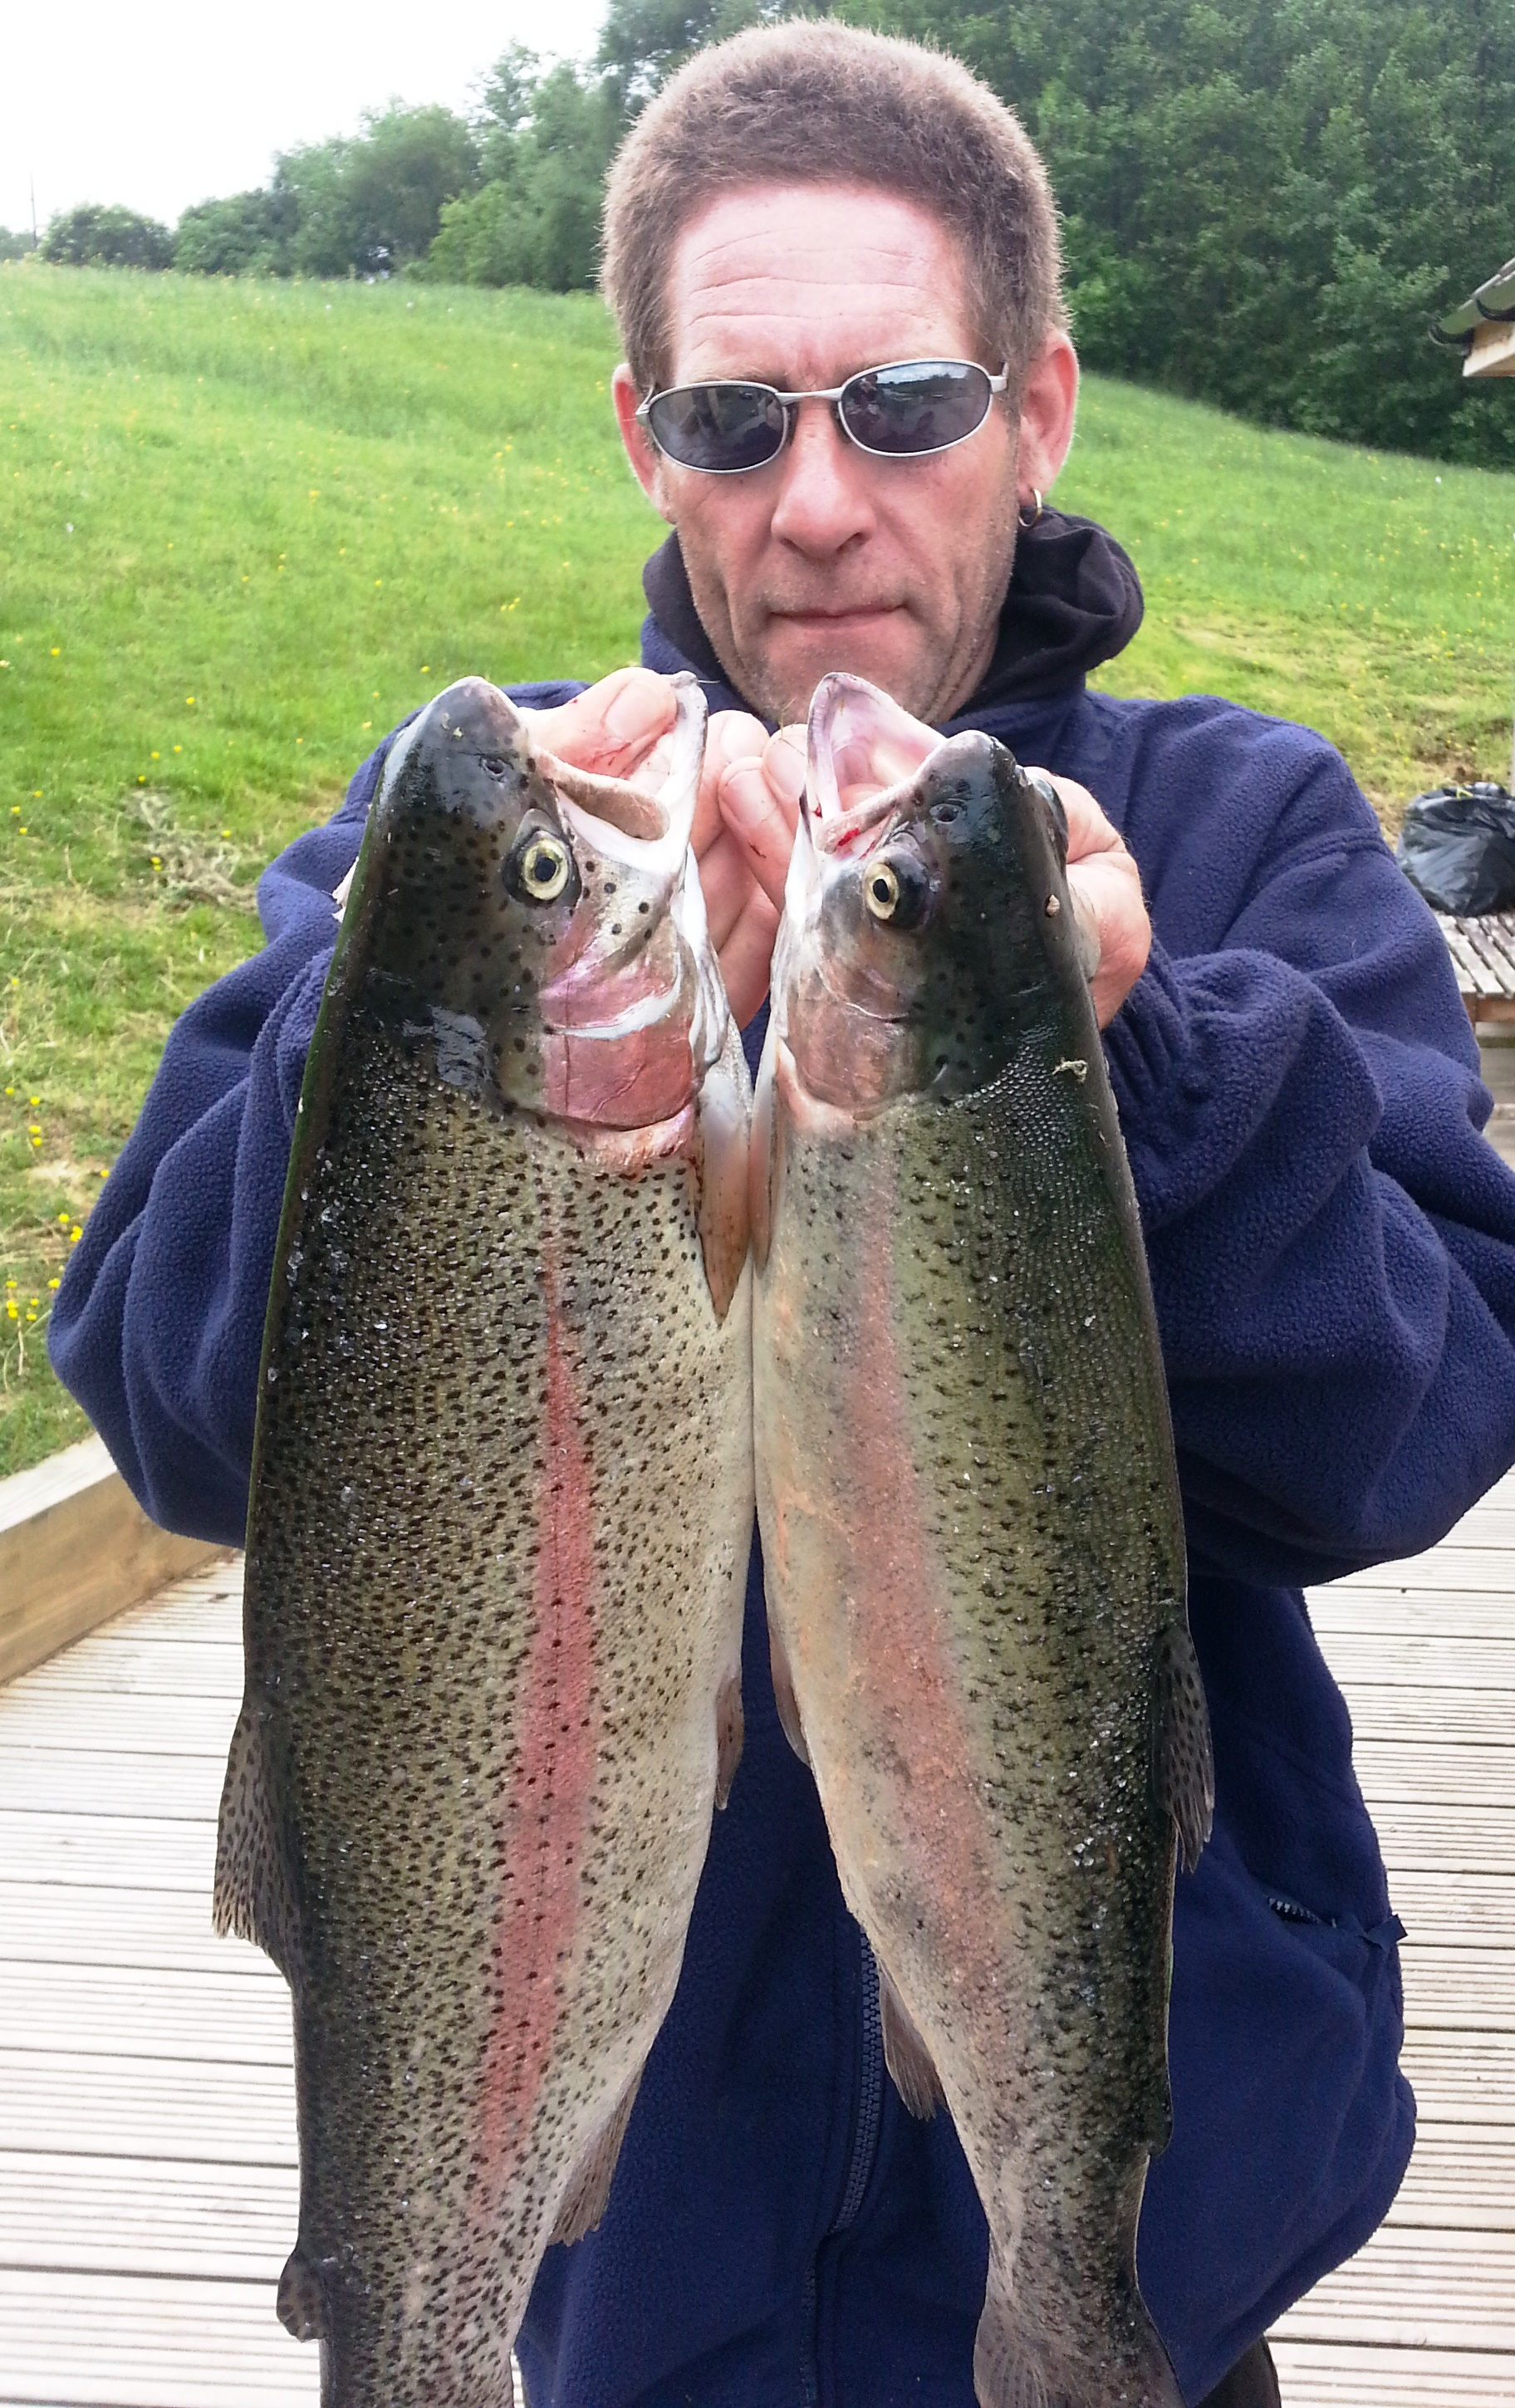 A Parmenter from Bexhill bags a pair including a 4lb 2oz rainbow trout